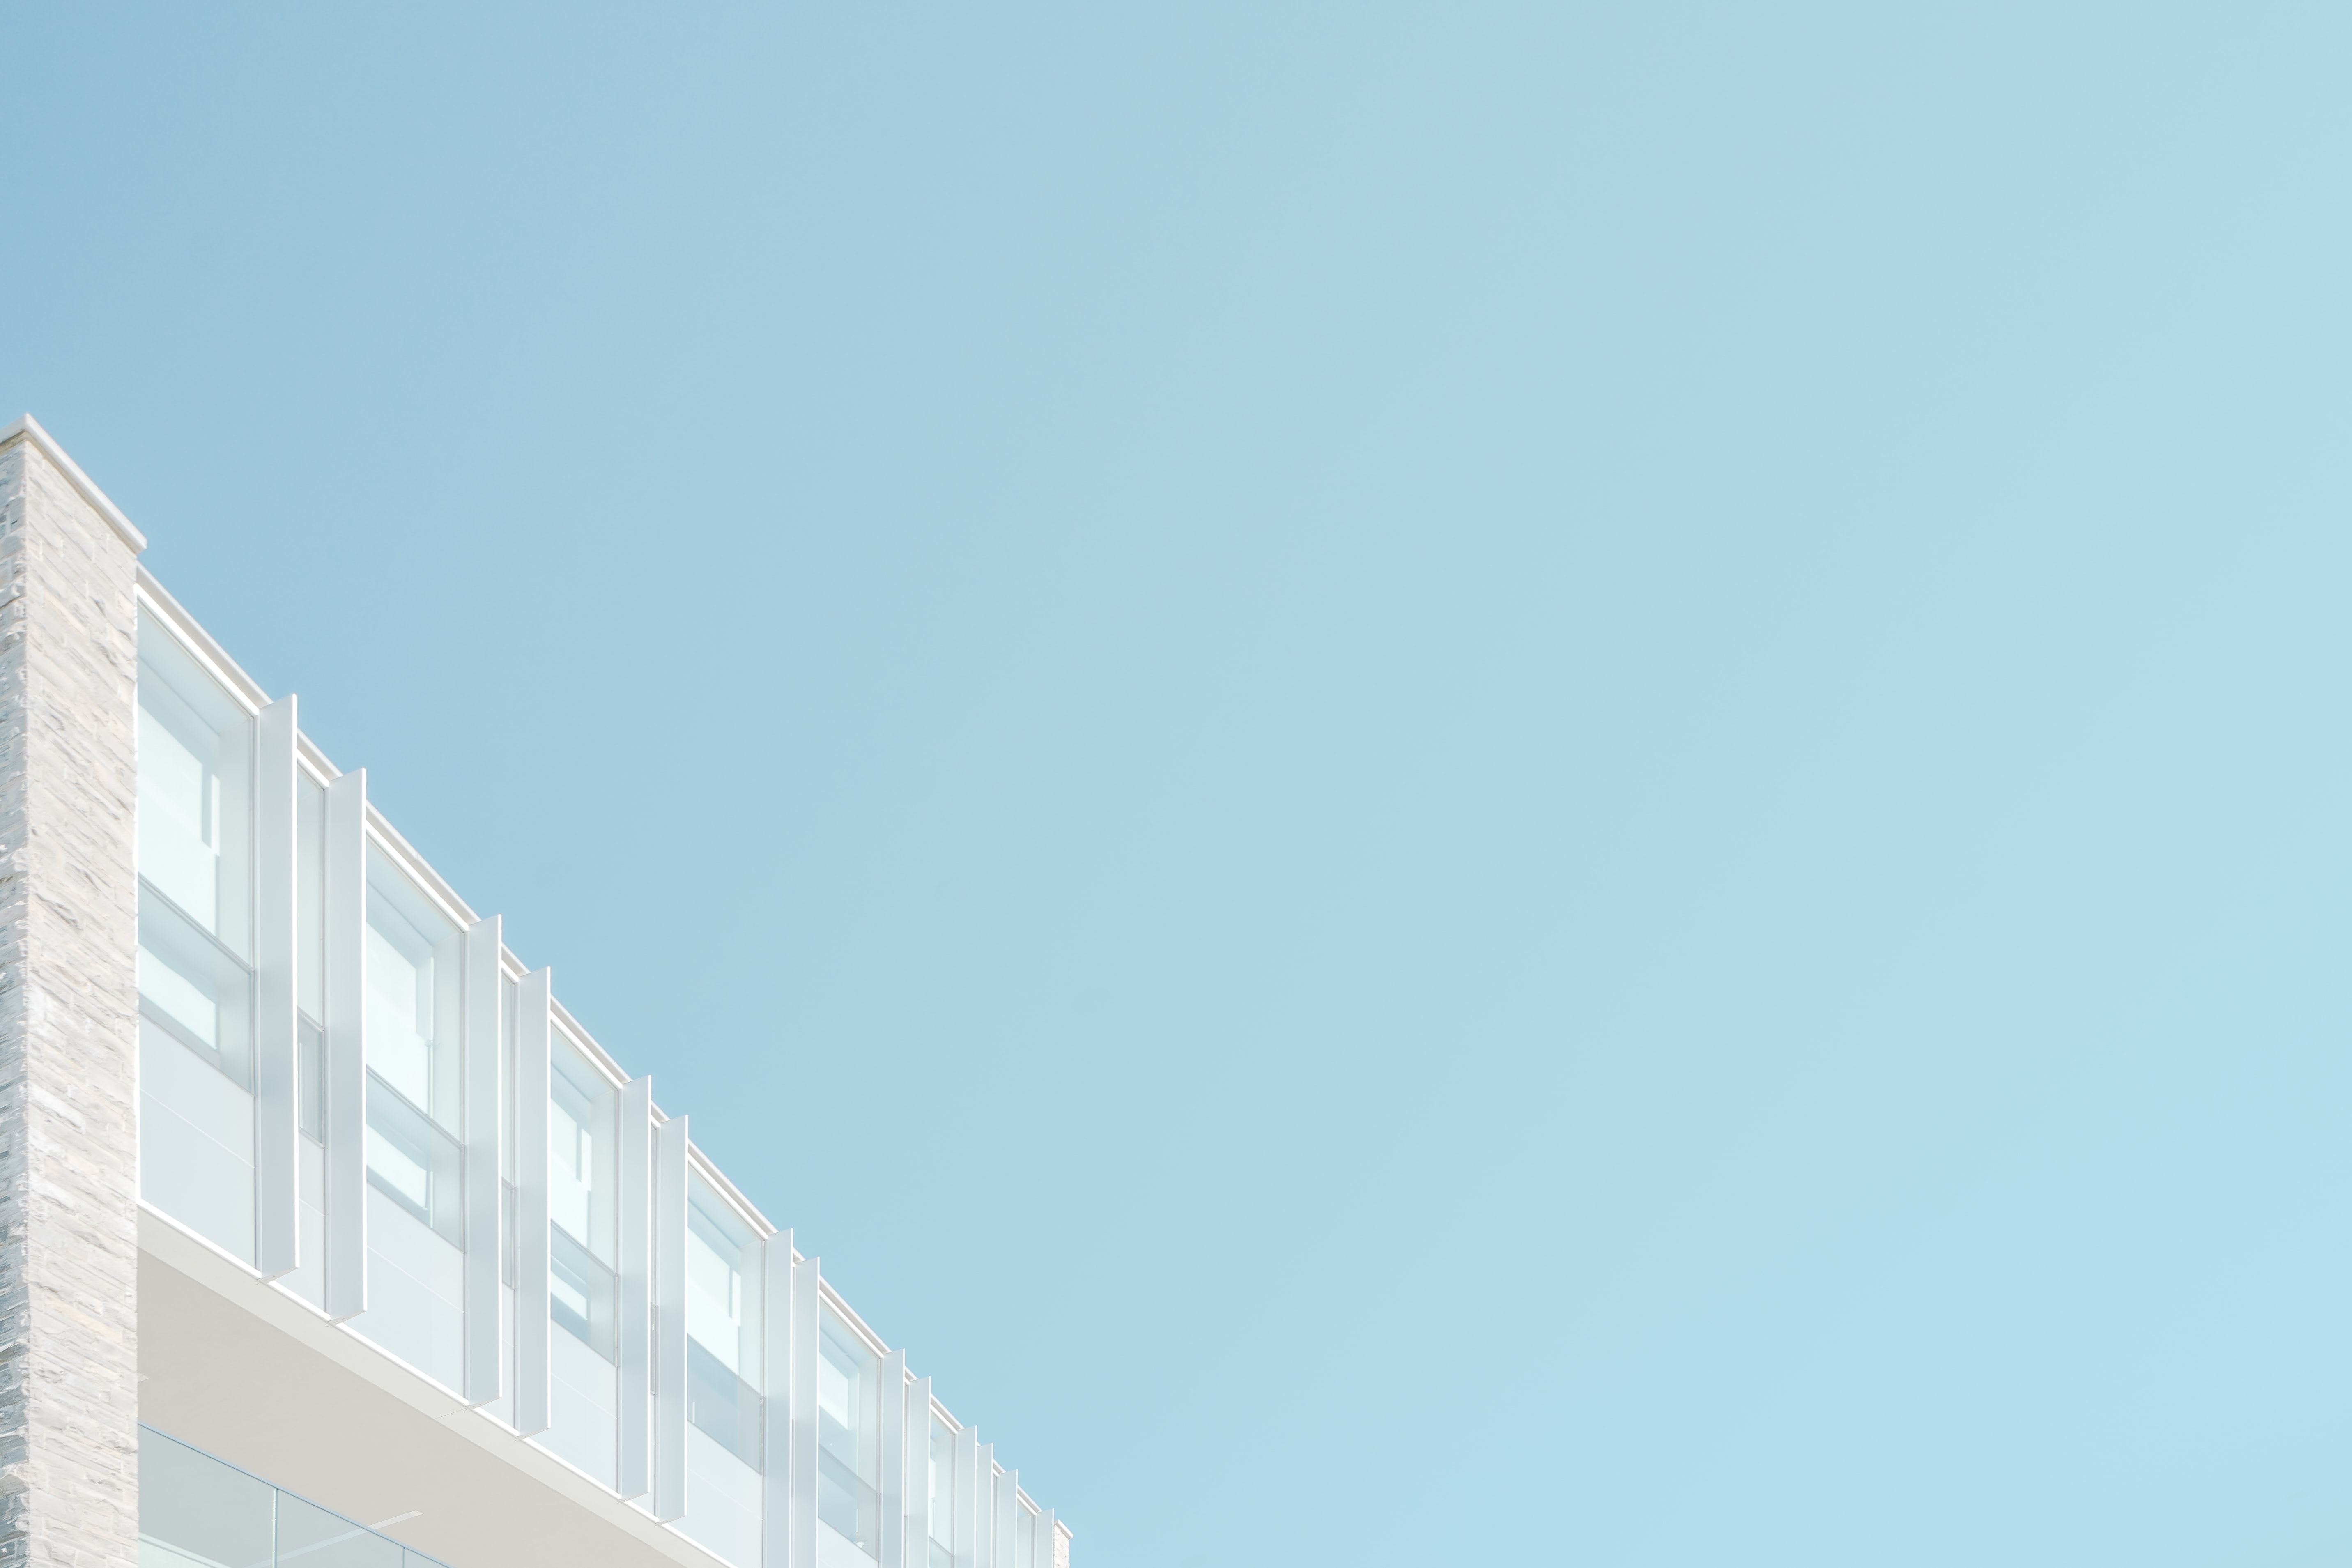 The top of a white modern facade under pastel blue sky